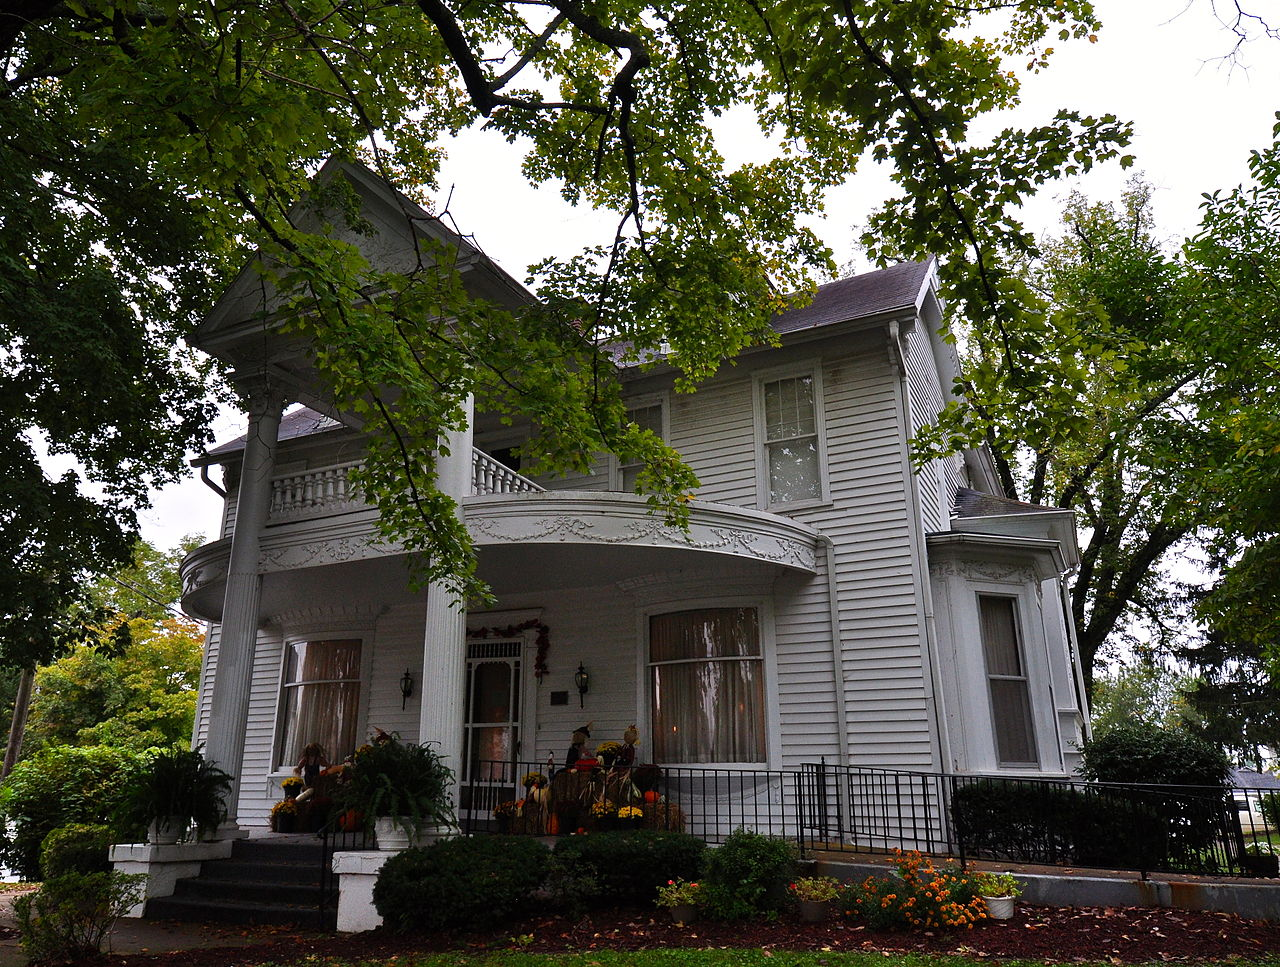 The Margaret Harwell Art Museum opened in 1979 in this historic home.